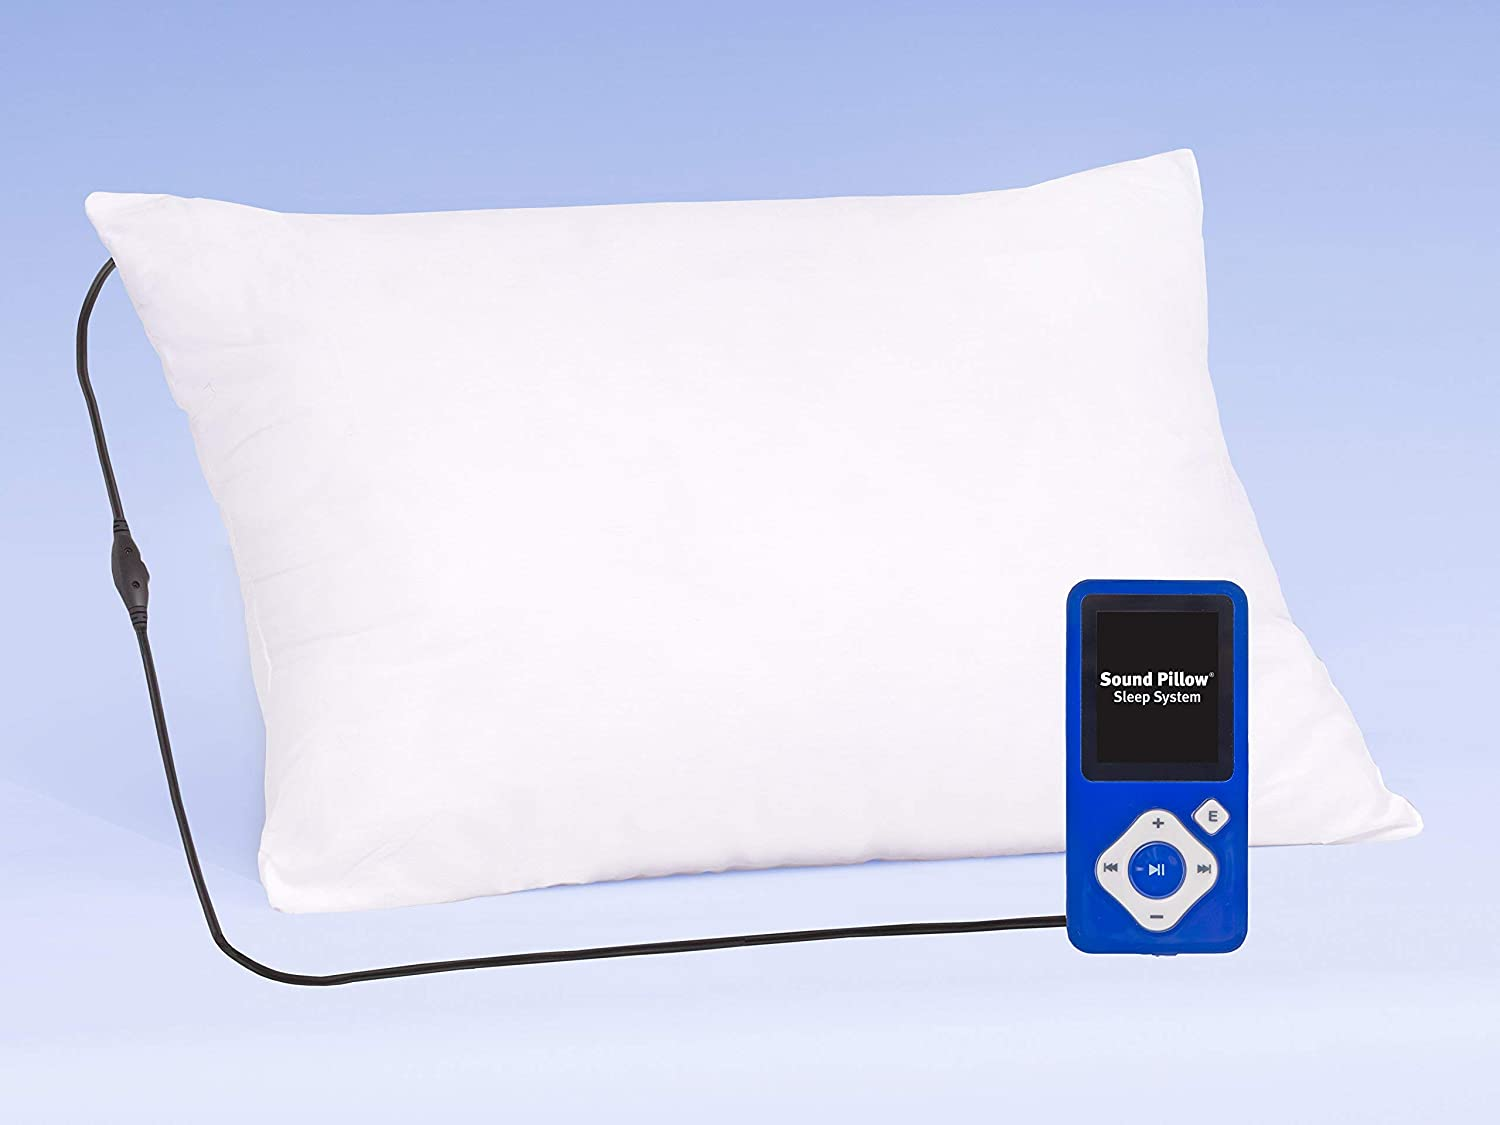 Sound Pillow Sleep System